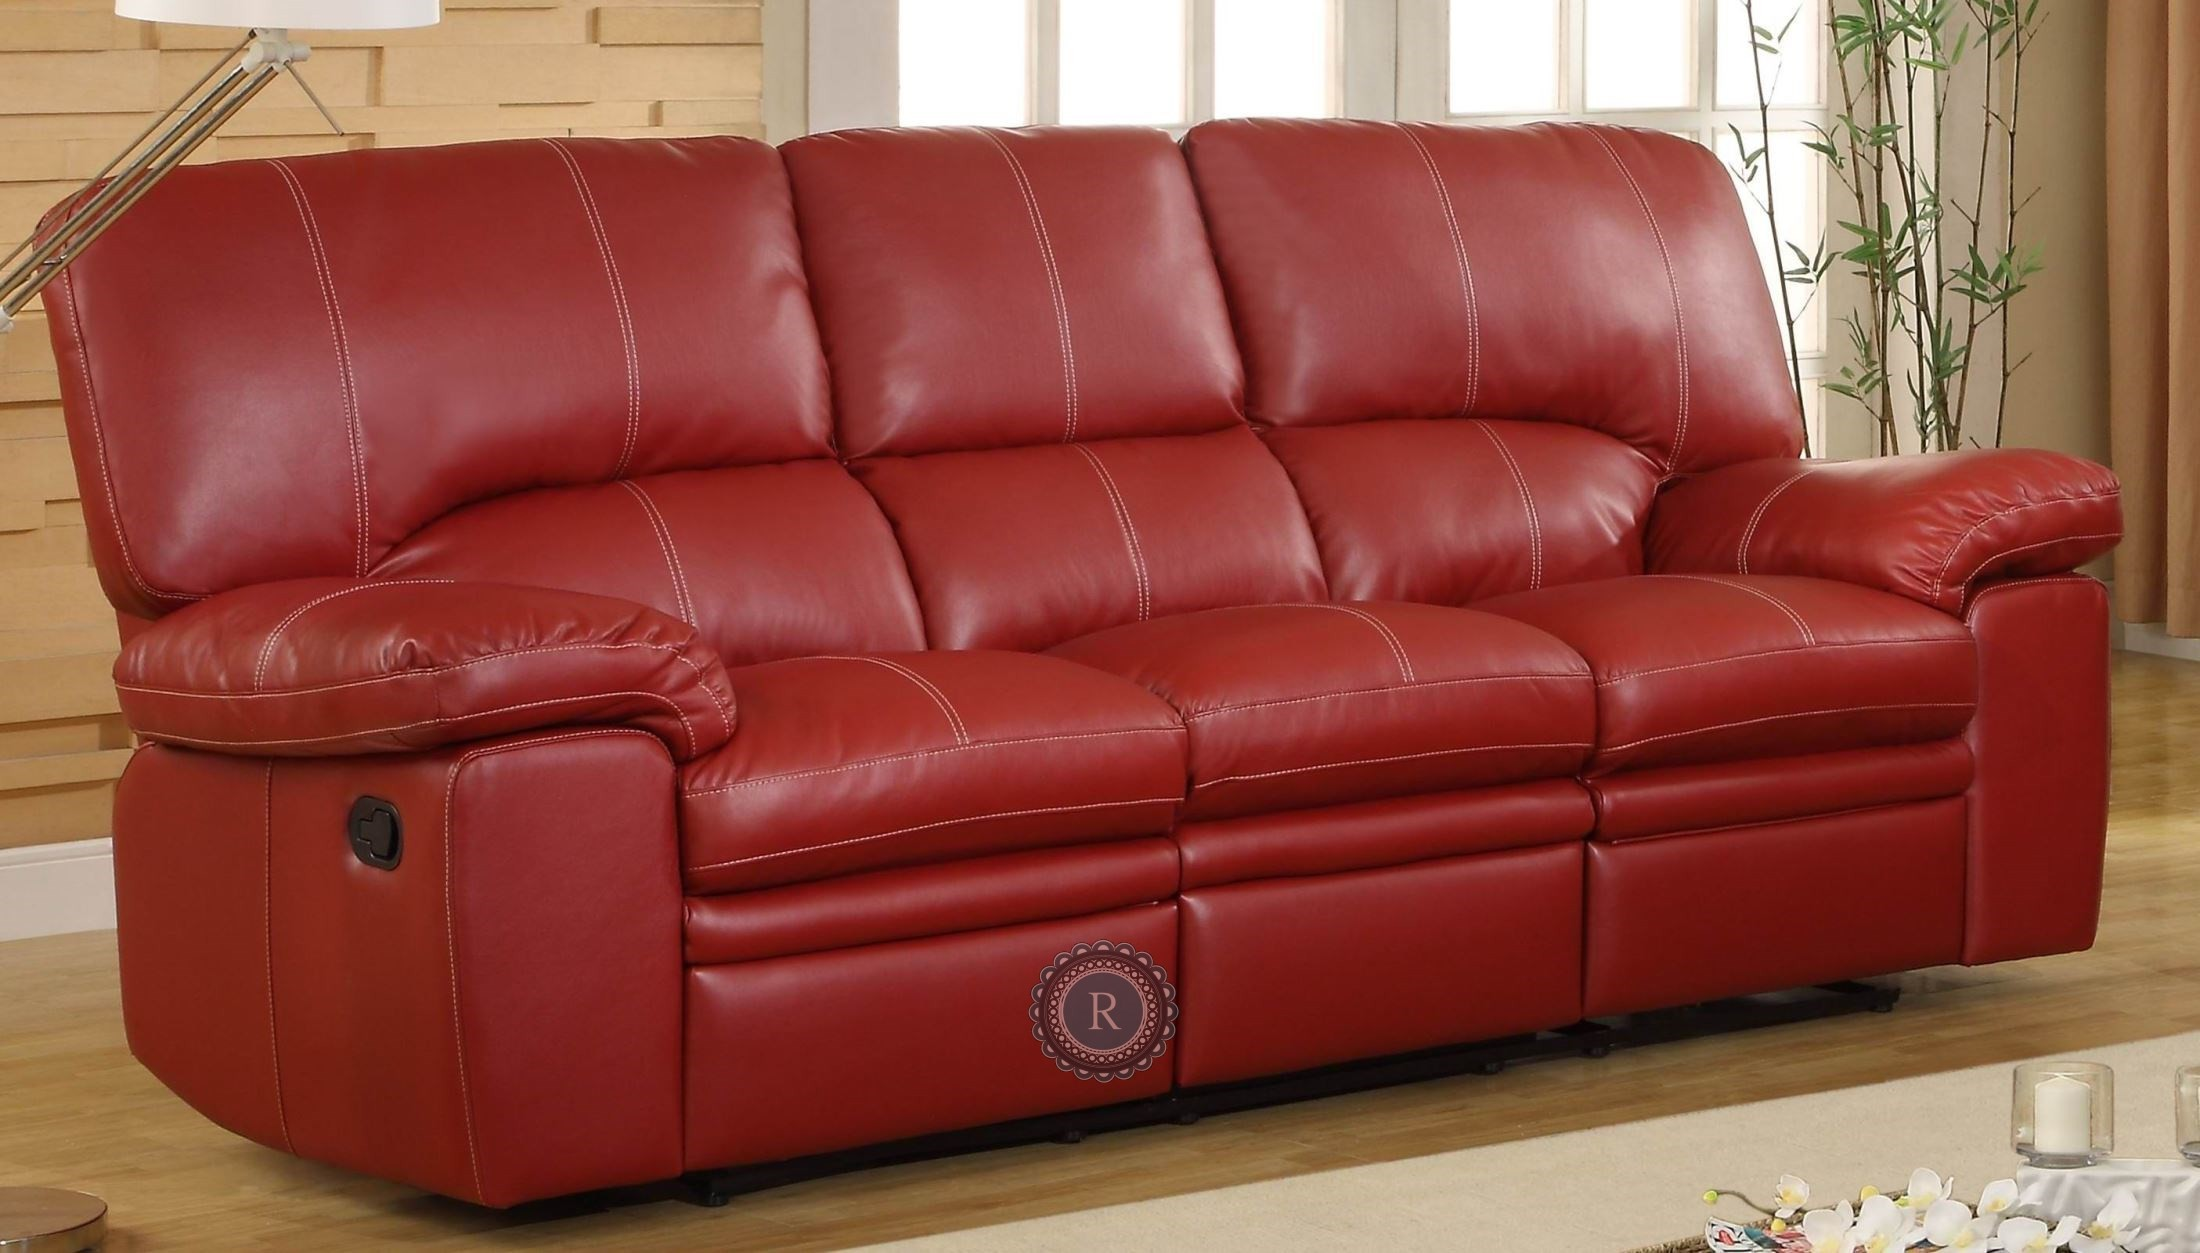 Kendrick Red Double Reclining Sofa 9611red 3 Homelegance